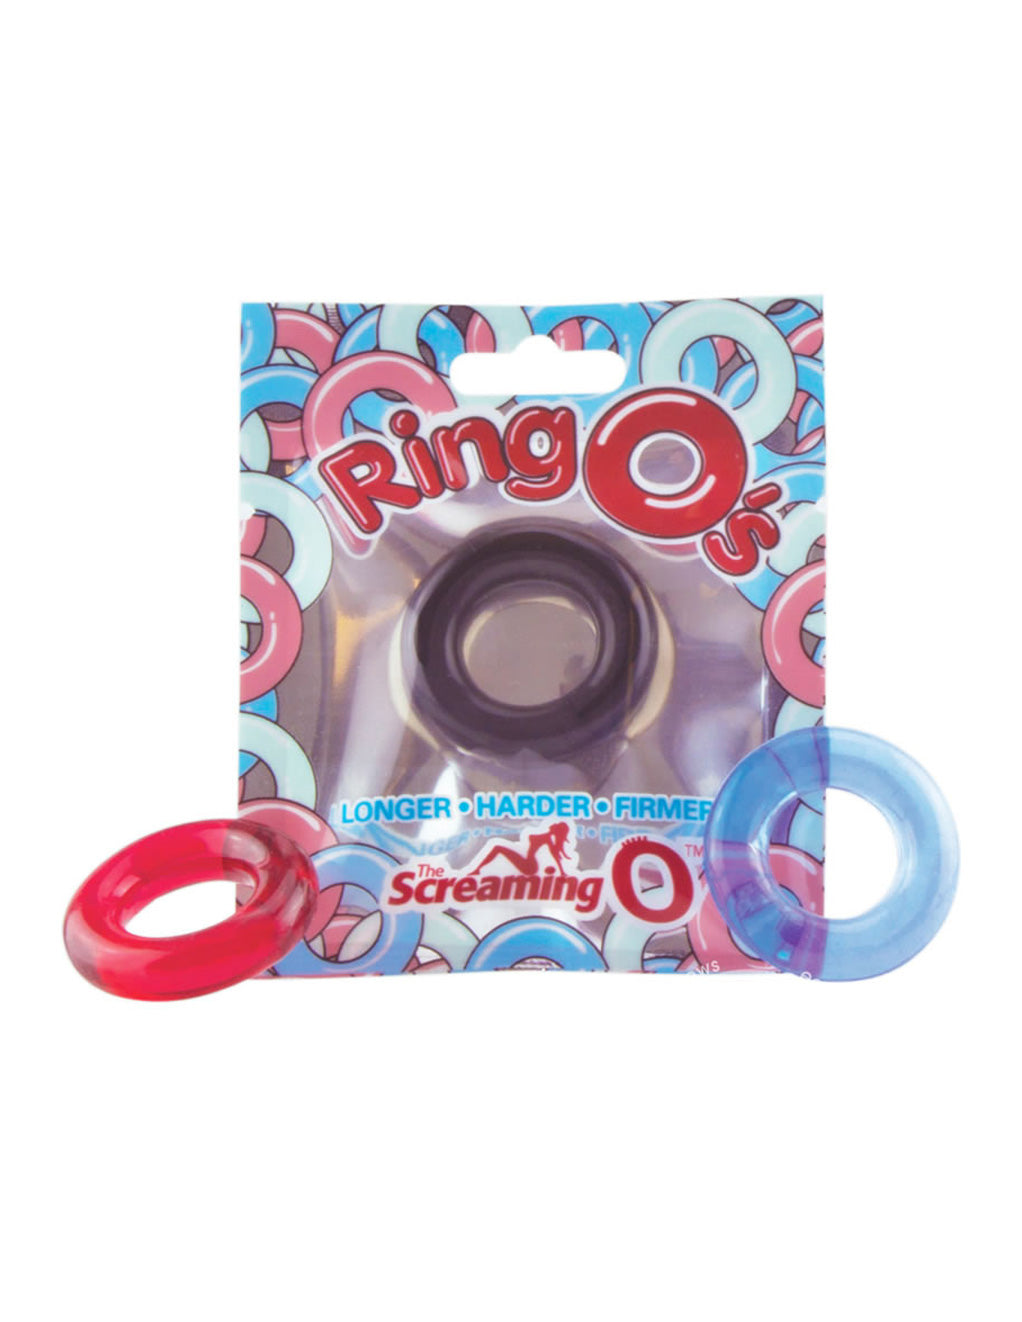 Screaming O Ring O's Stretchy Cock Ring one in a pack